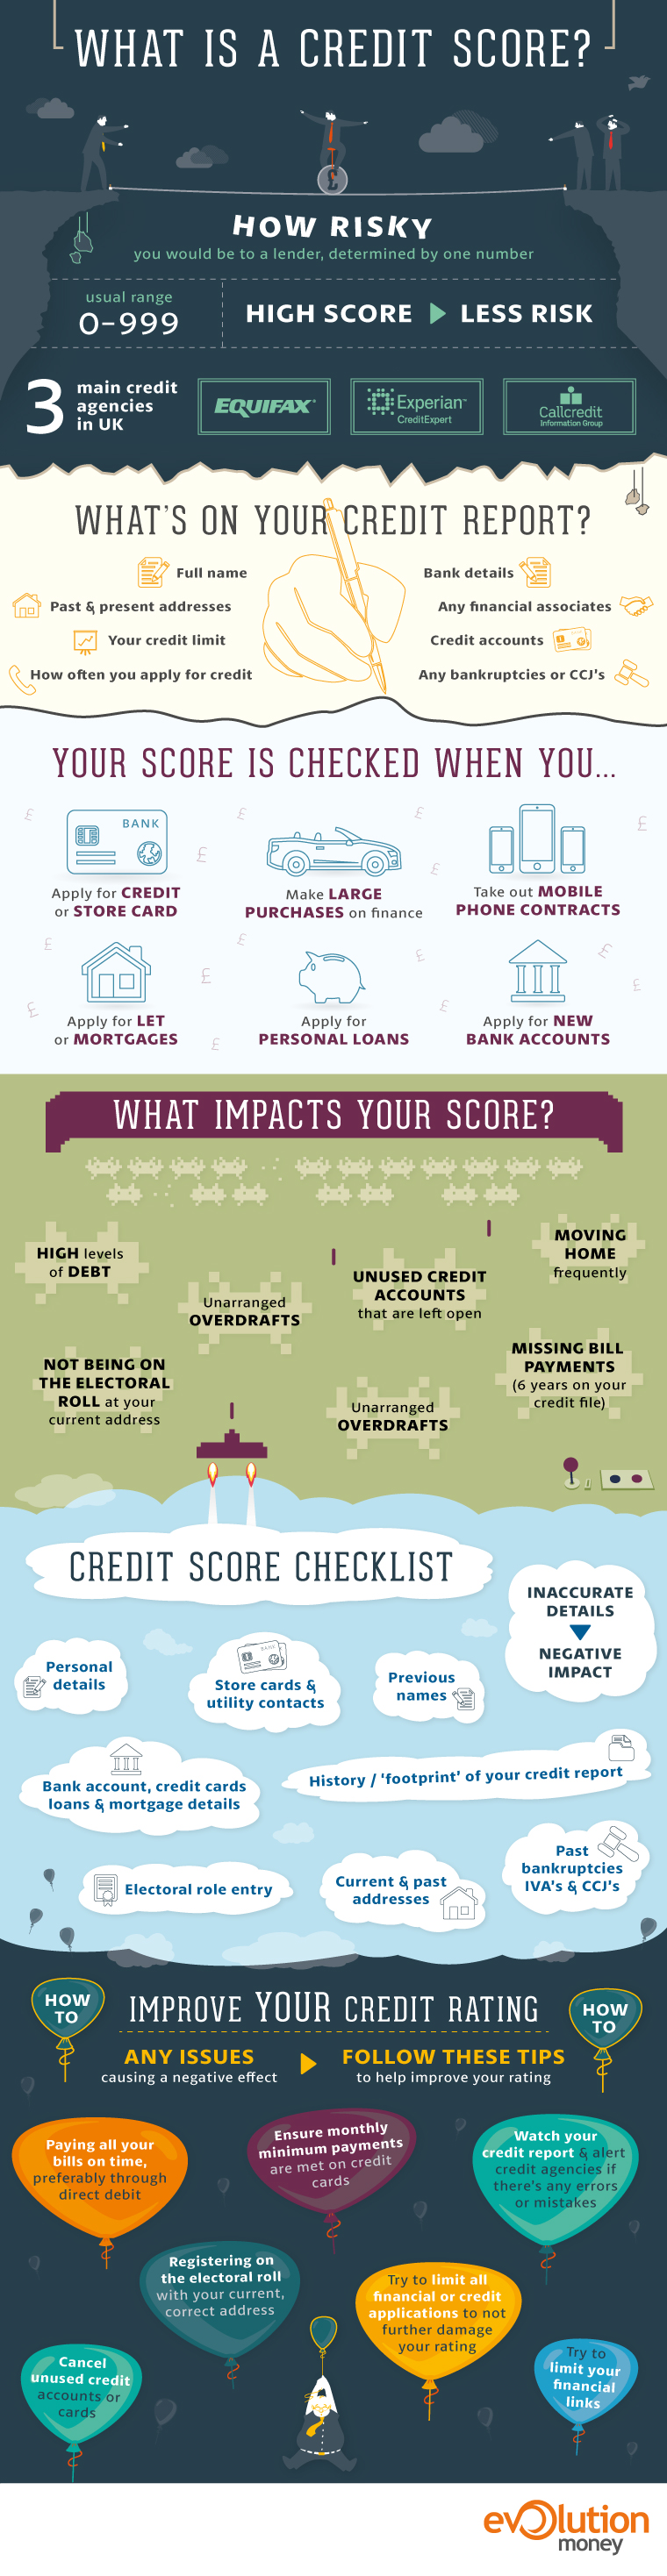 Evolution Money credit score infographic.